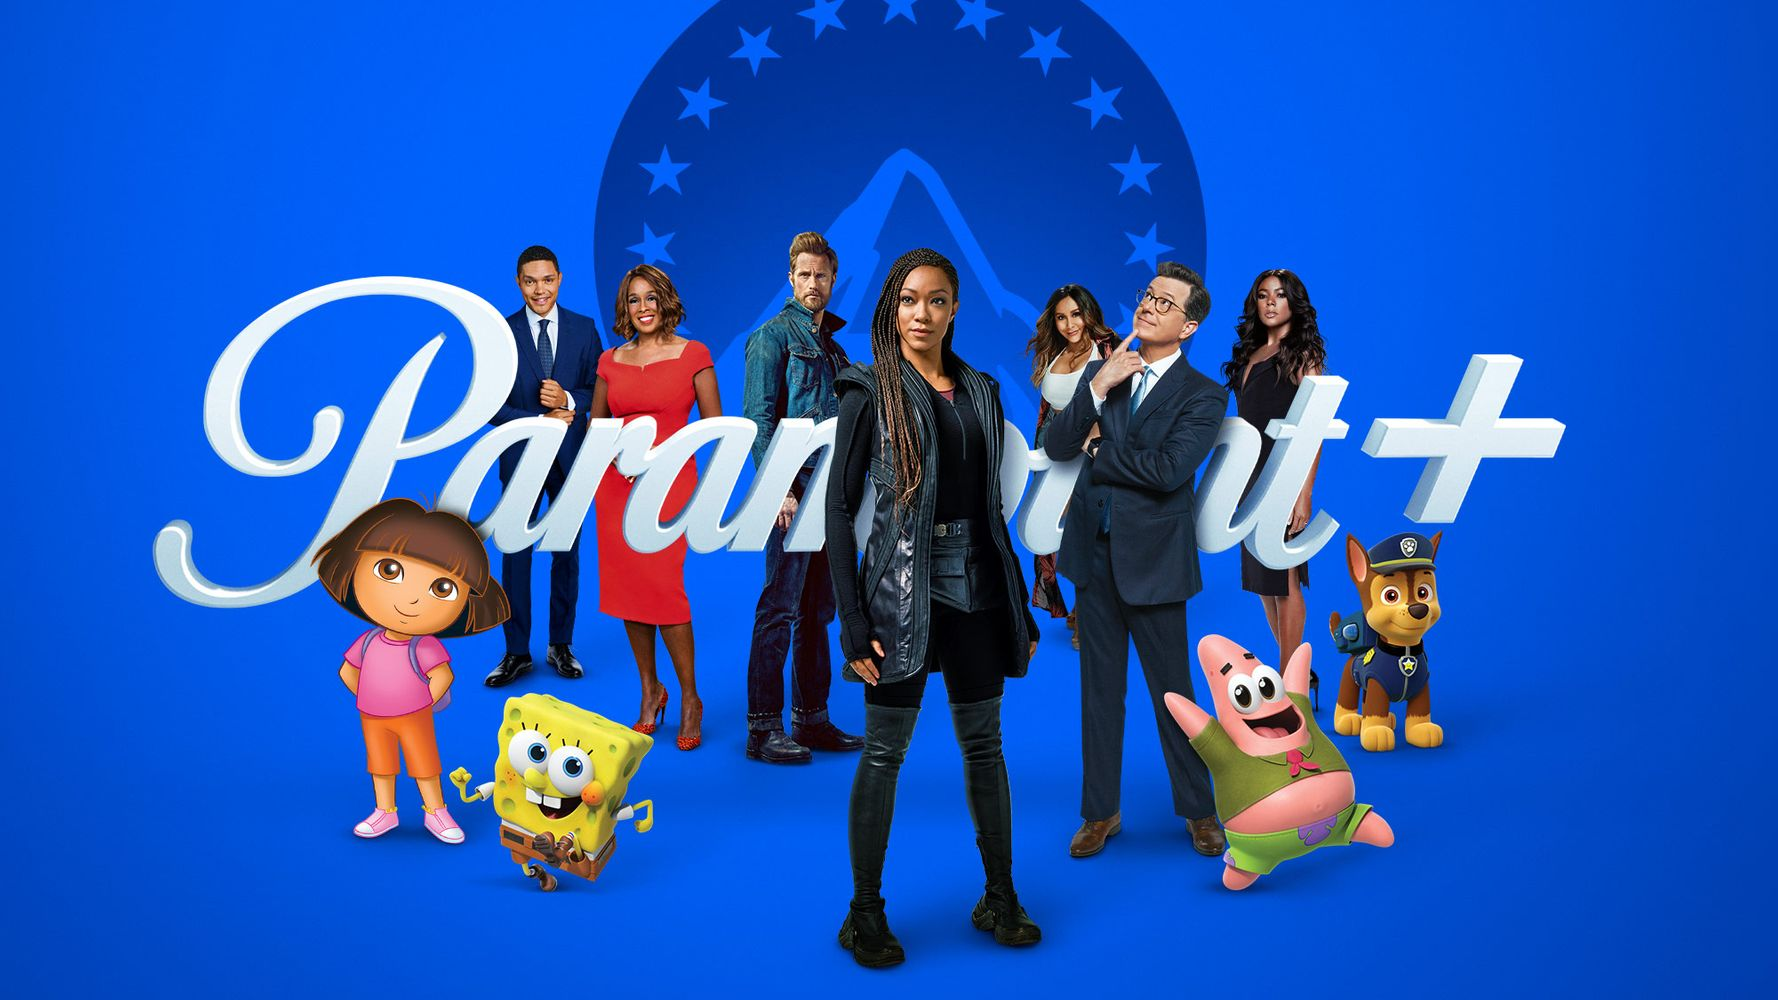 Paramount+: Everything To Know About The Newest Streaming Service